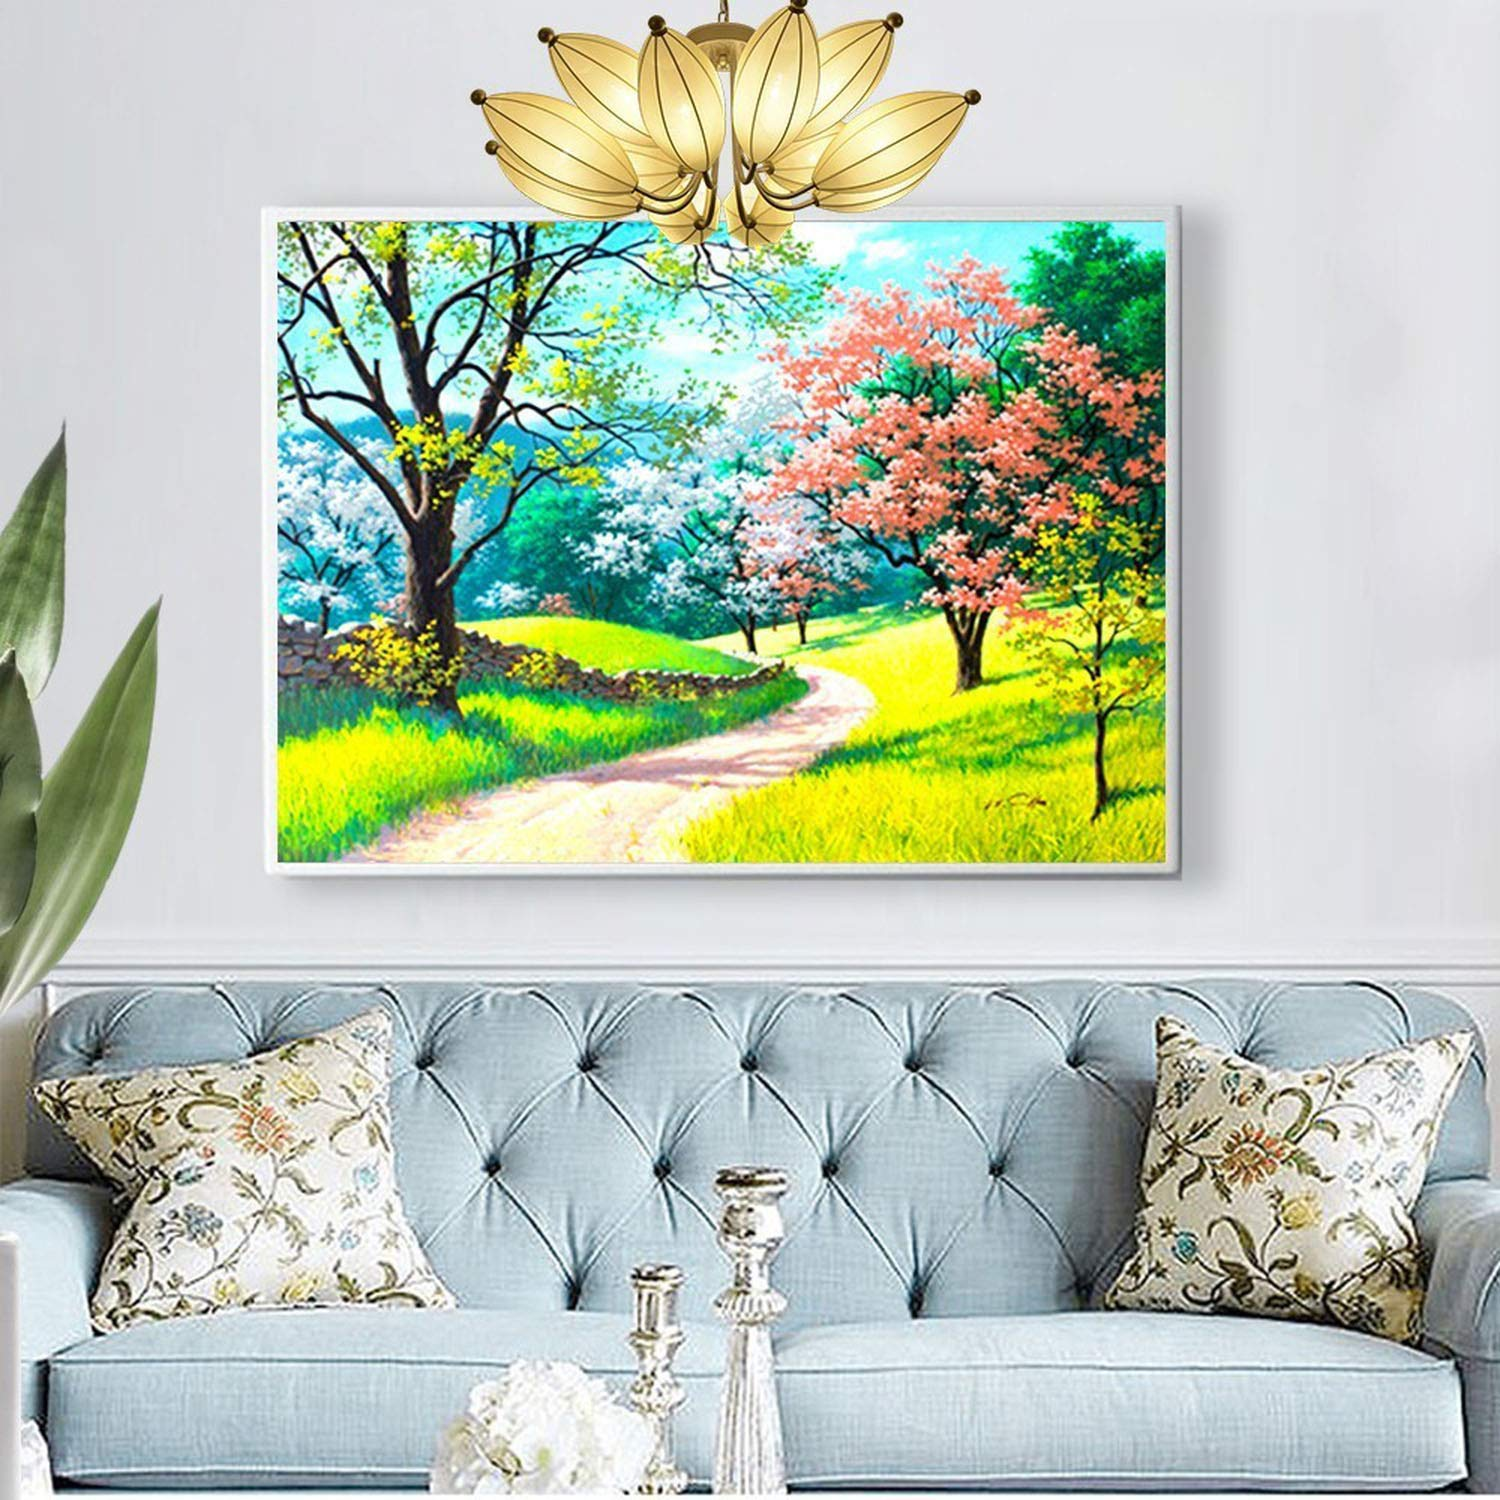 Diamond Embroidery Full Display Spring Full Square DIY Cross Stitch Diamond Painting Landscape Mosaic Home Decor Gift,F20,Squaredrill 80x100cm by ONLY-FOR-ME-1 (Image #3)